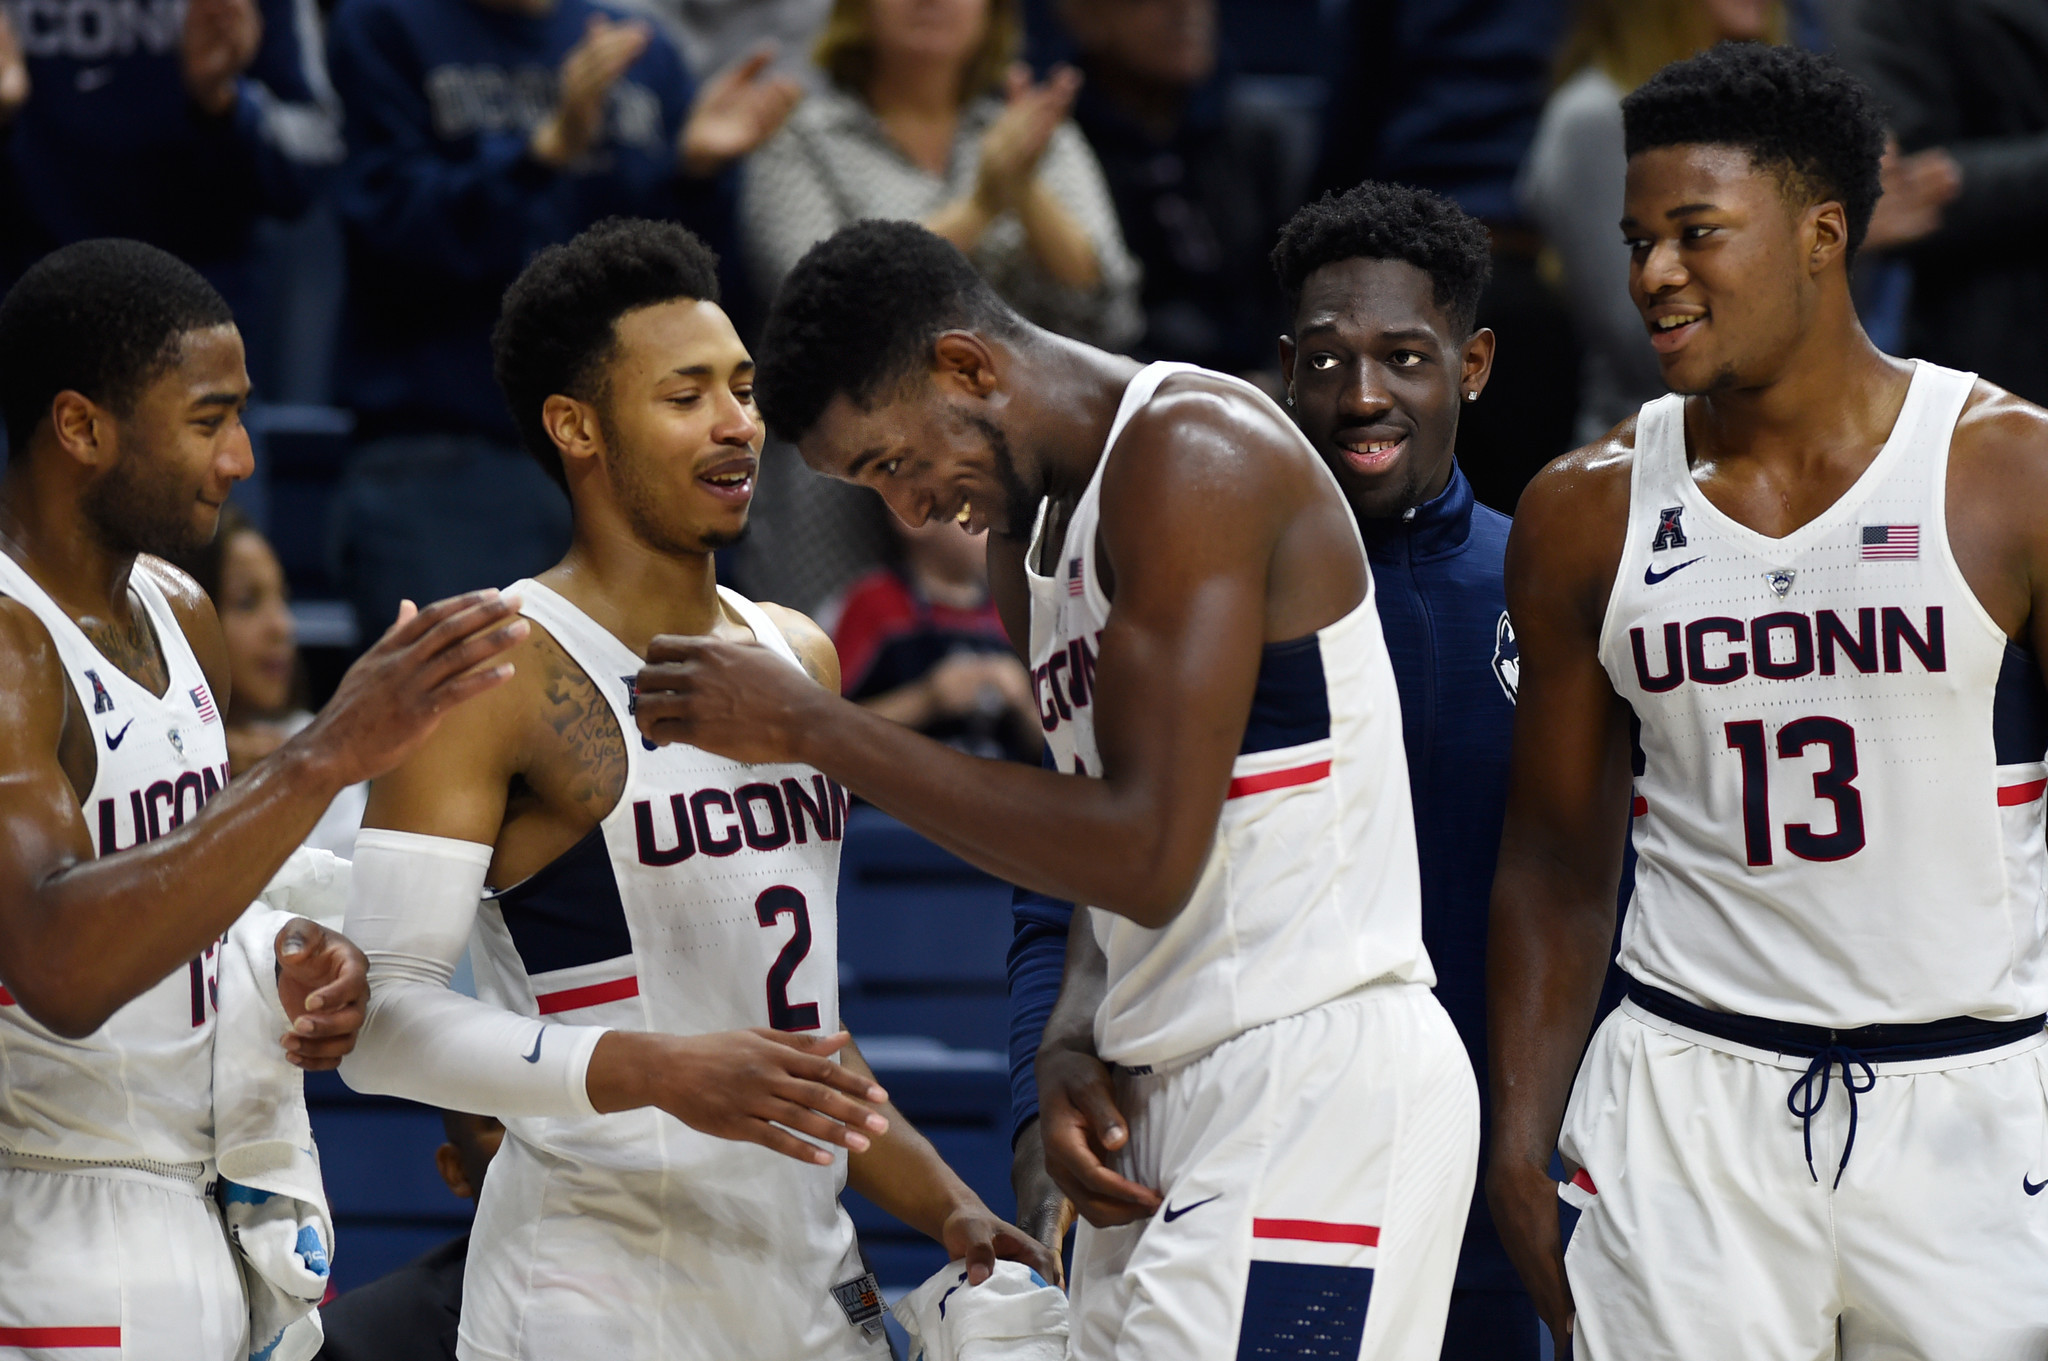 UConn Men: When Adams Looks This Good, And Facey Chips In ...